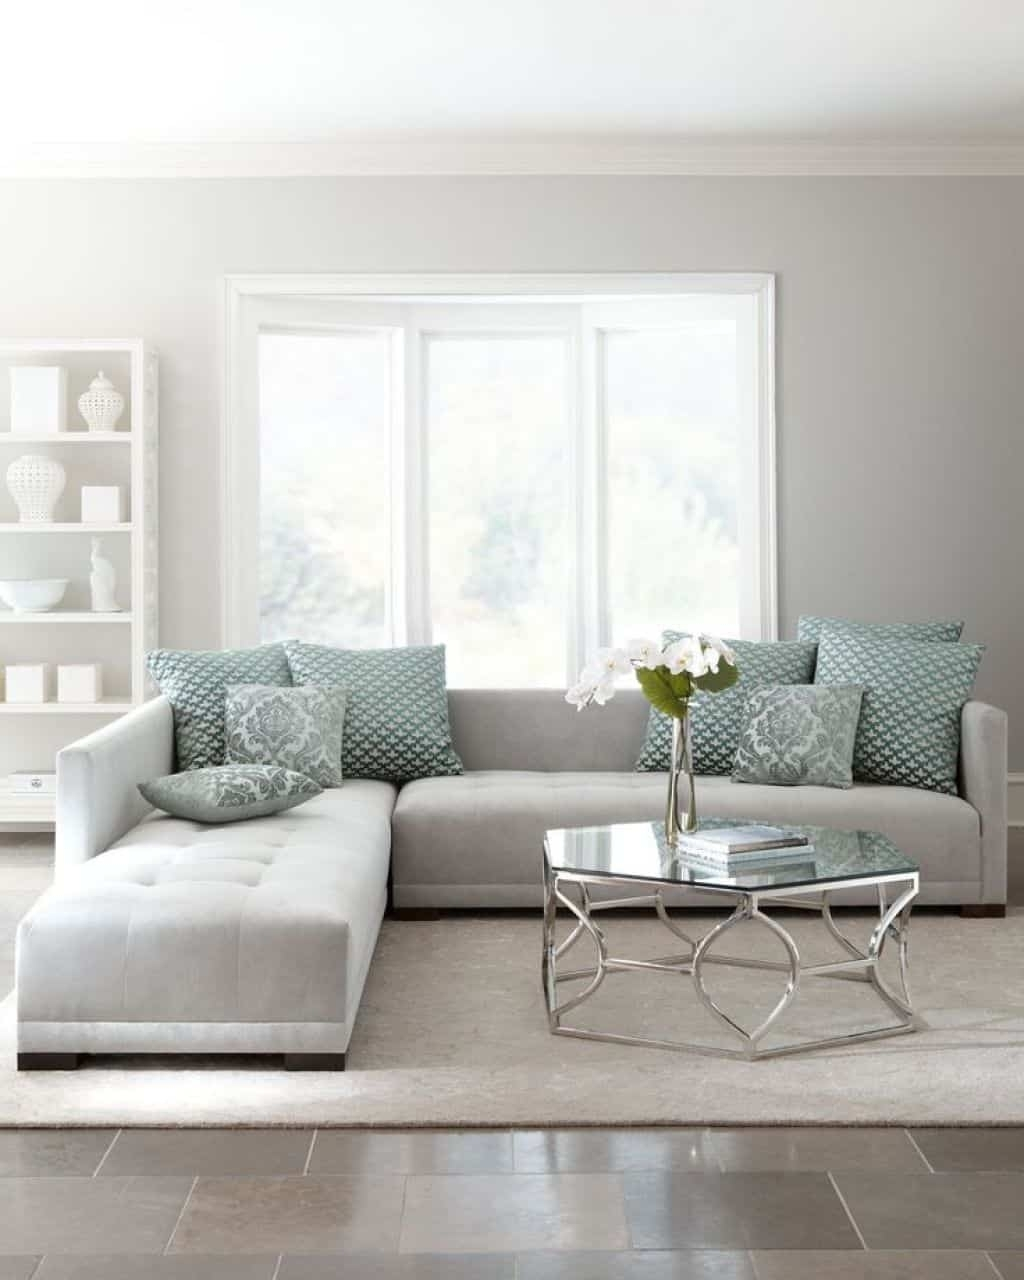 Living Room With Light Grey Sectional Sofa - Ways To Move A pertaining to Light Grey Sectional Sofas (Image 7 of 10)